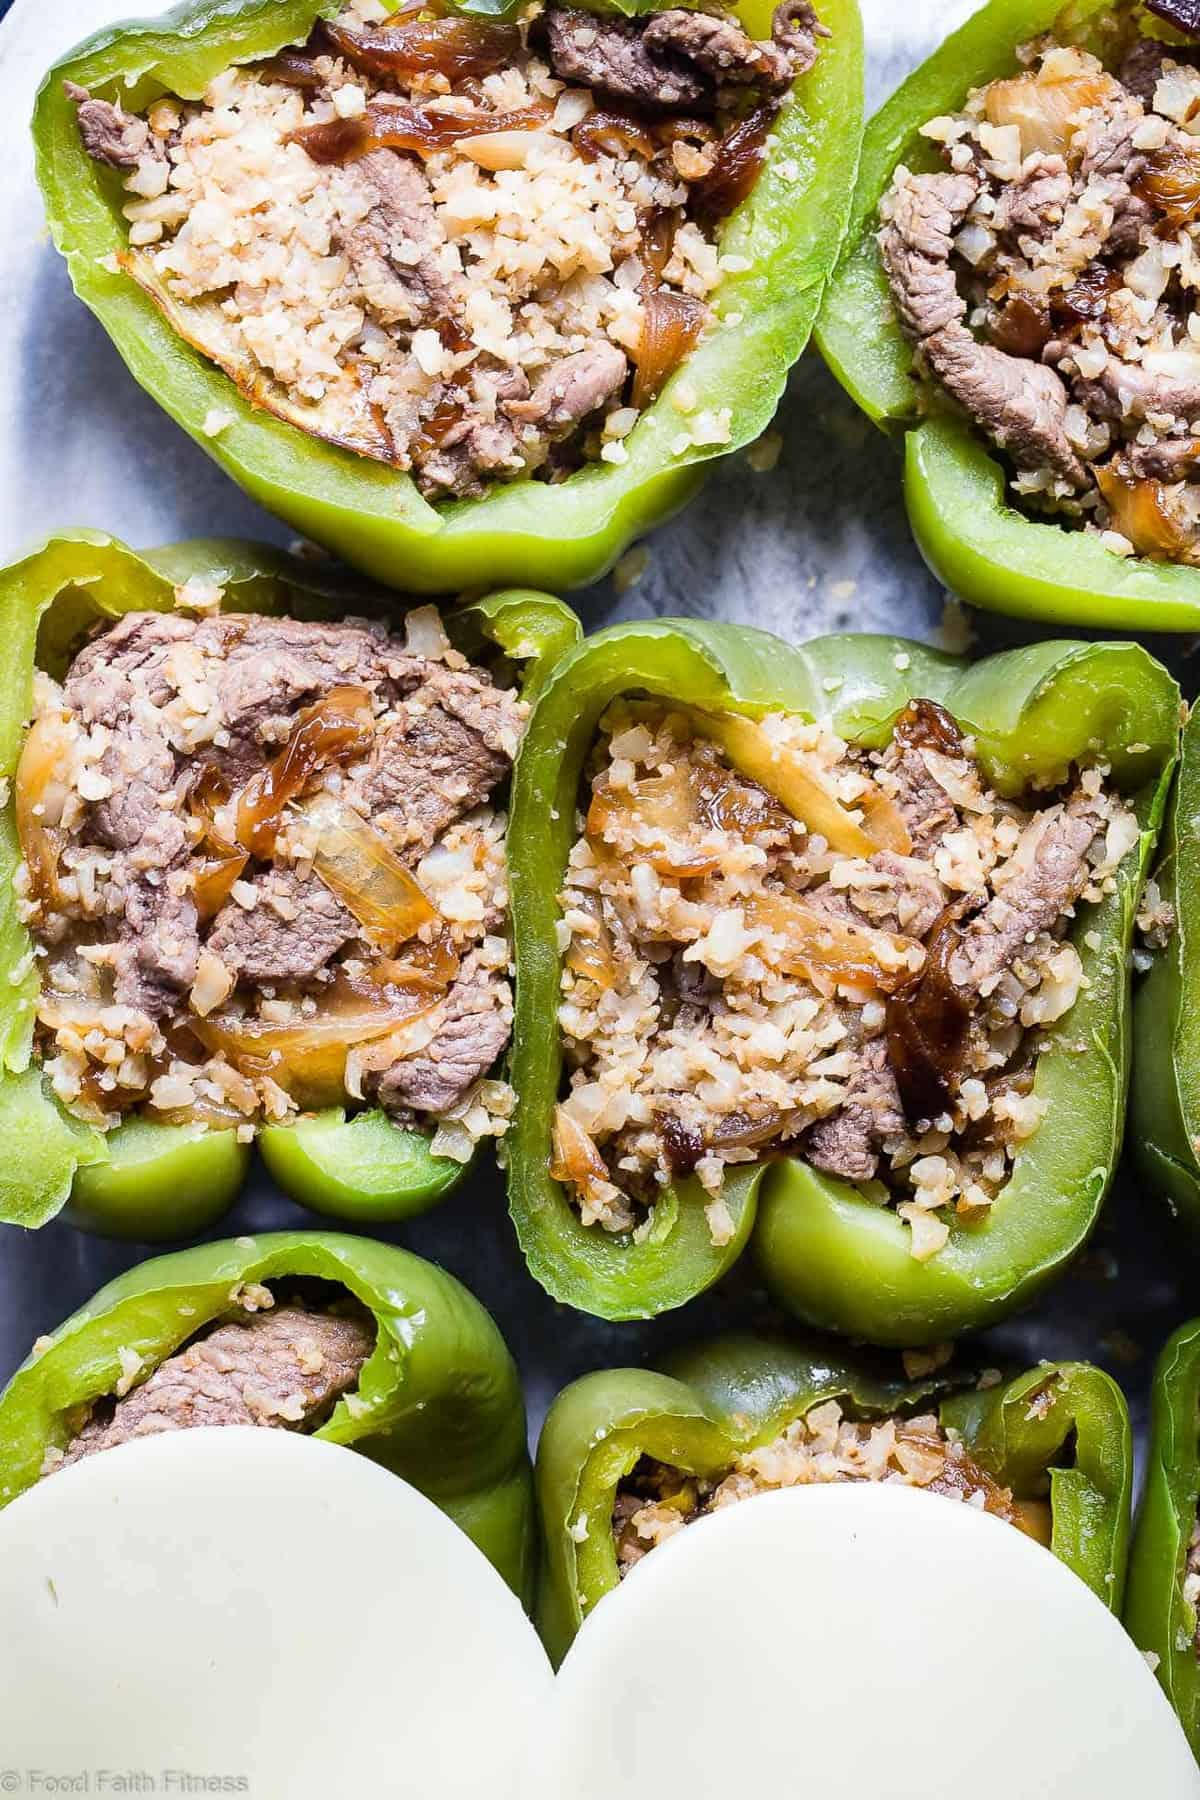 Low Carb Keto Philly Cheesesteak Stuffed Bell Peppers - These stuffed peppers have all the flavors of your favorite sandwich in a healthy, low carb, easy weeknight meal that will please even picky eaters! Healthy comfort food at its best! | #Foodfaithfitness | #Glutenfree #Keto #Lowcarb #Healthy #Grainfree